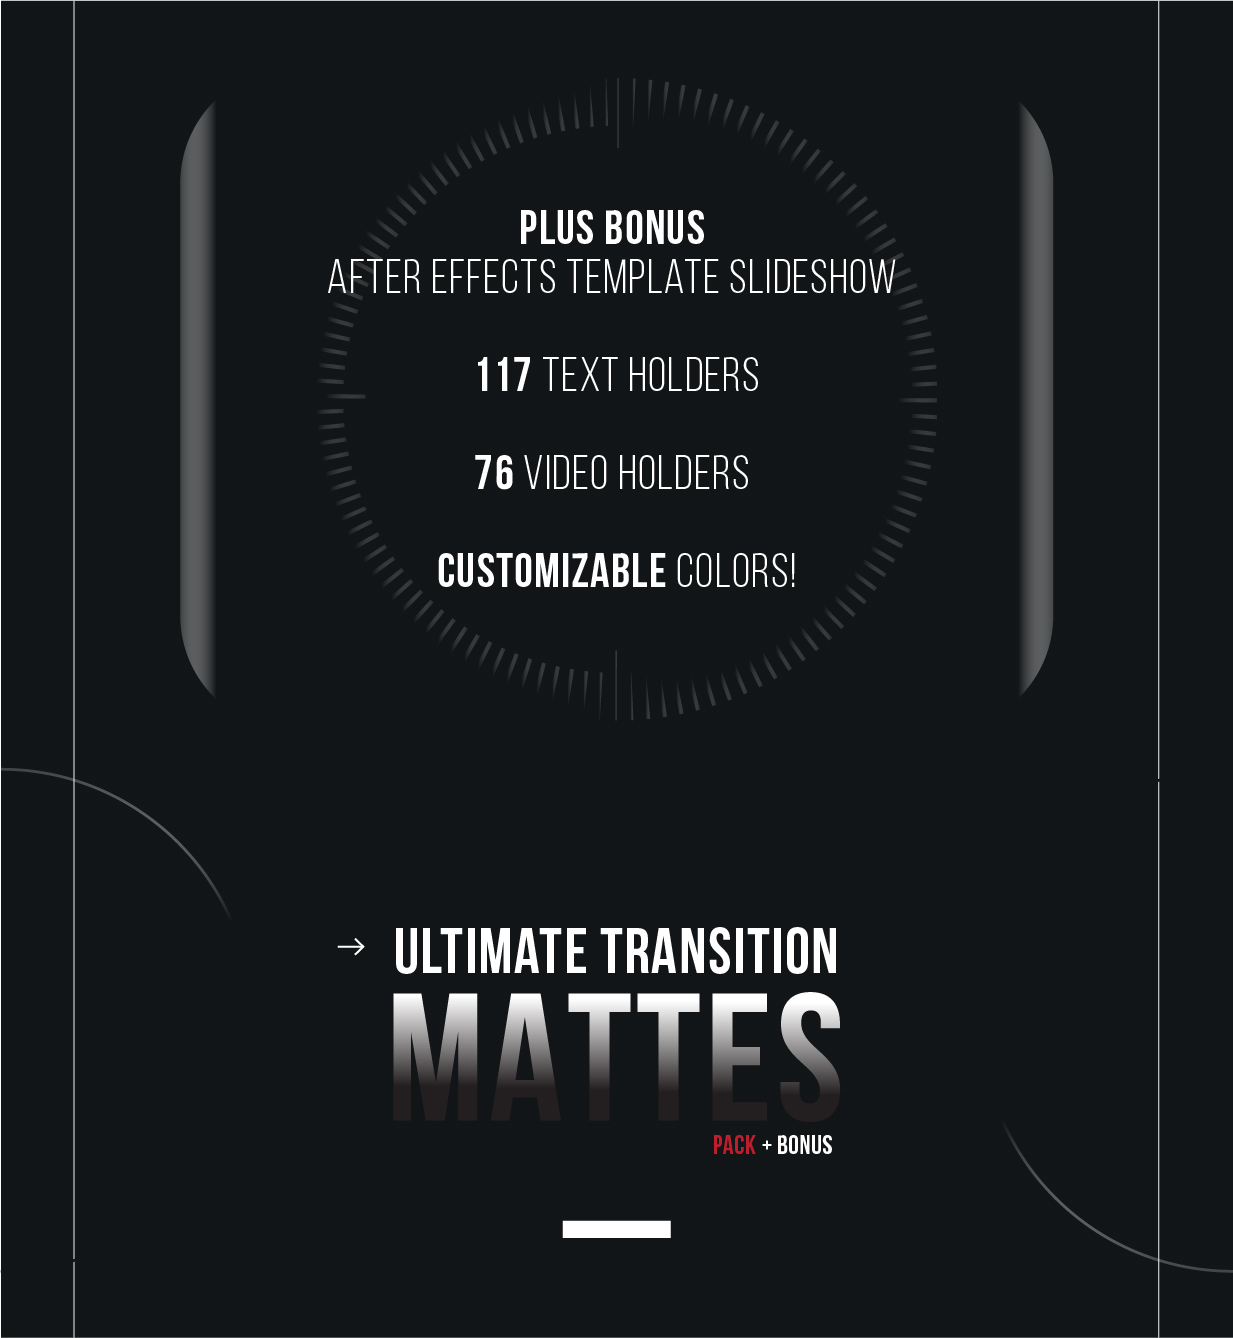 Ultimate Transition Mattes Pack - 12